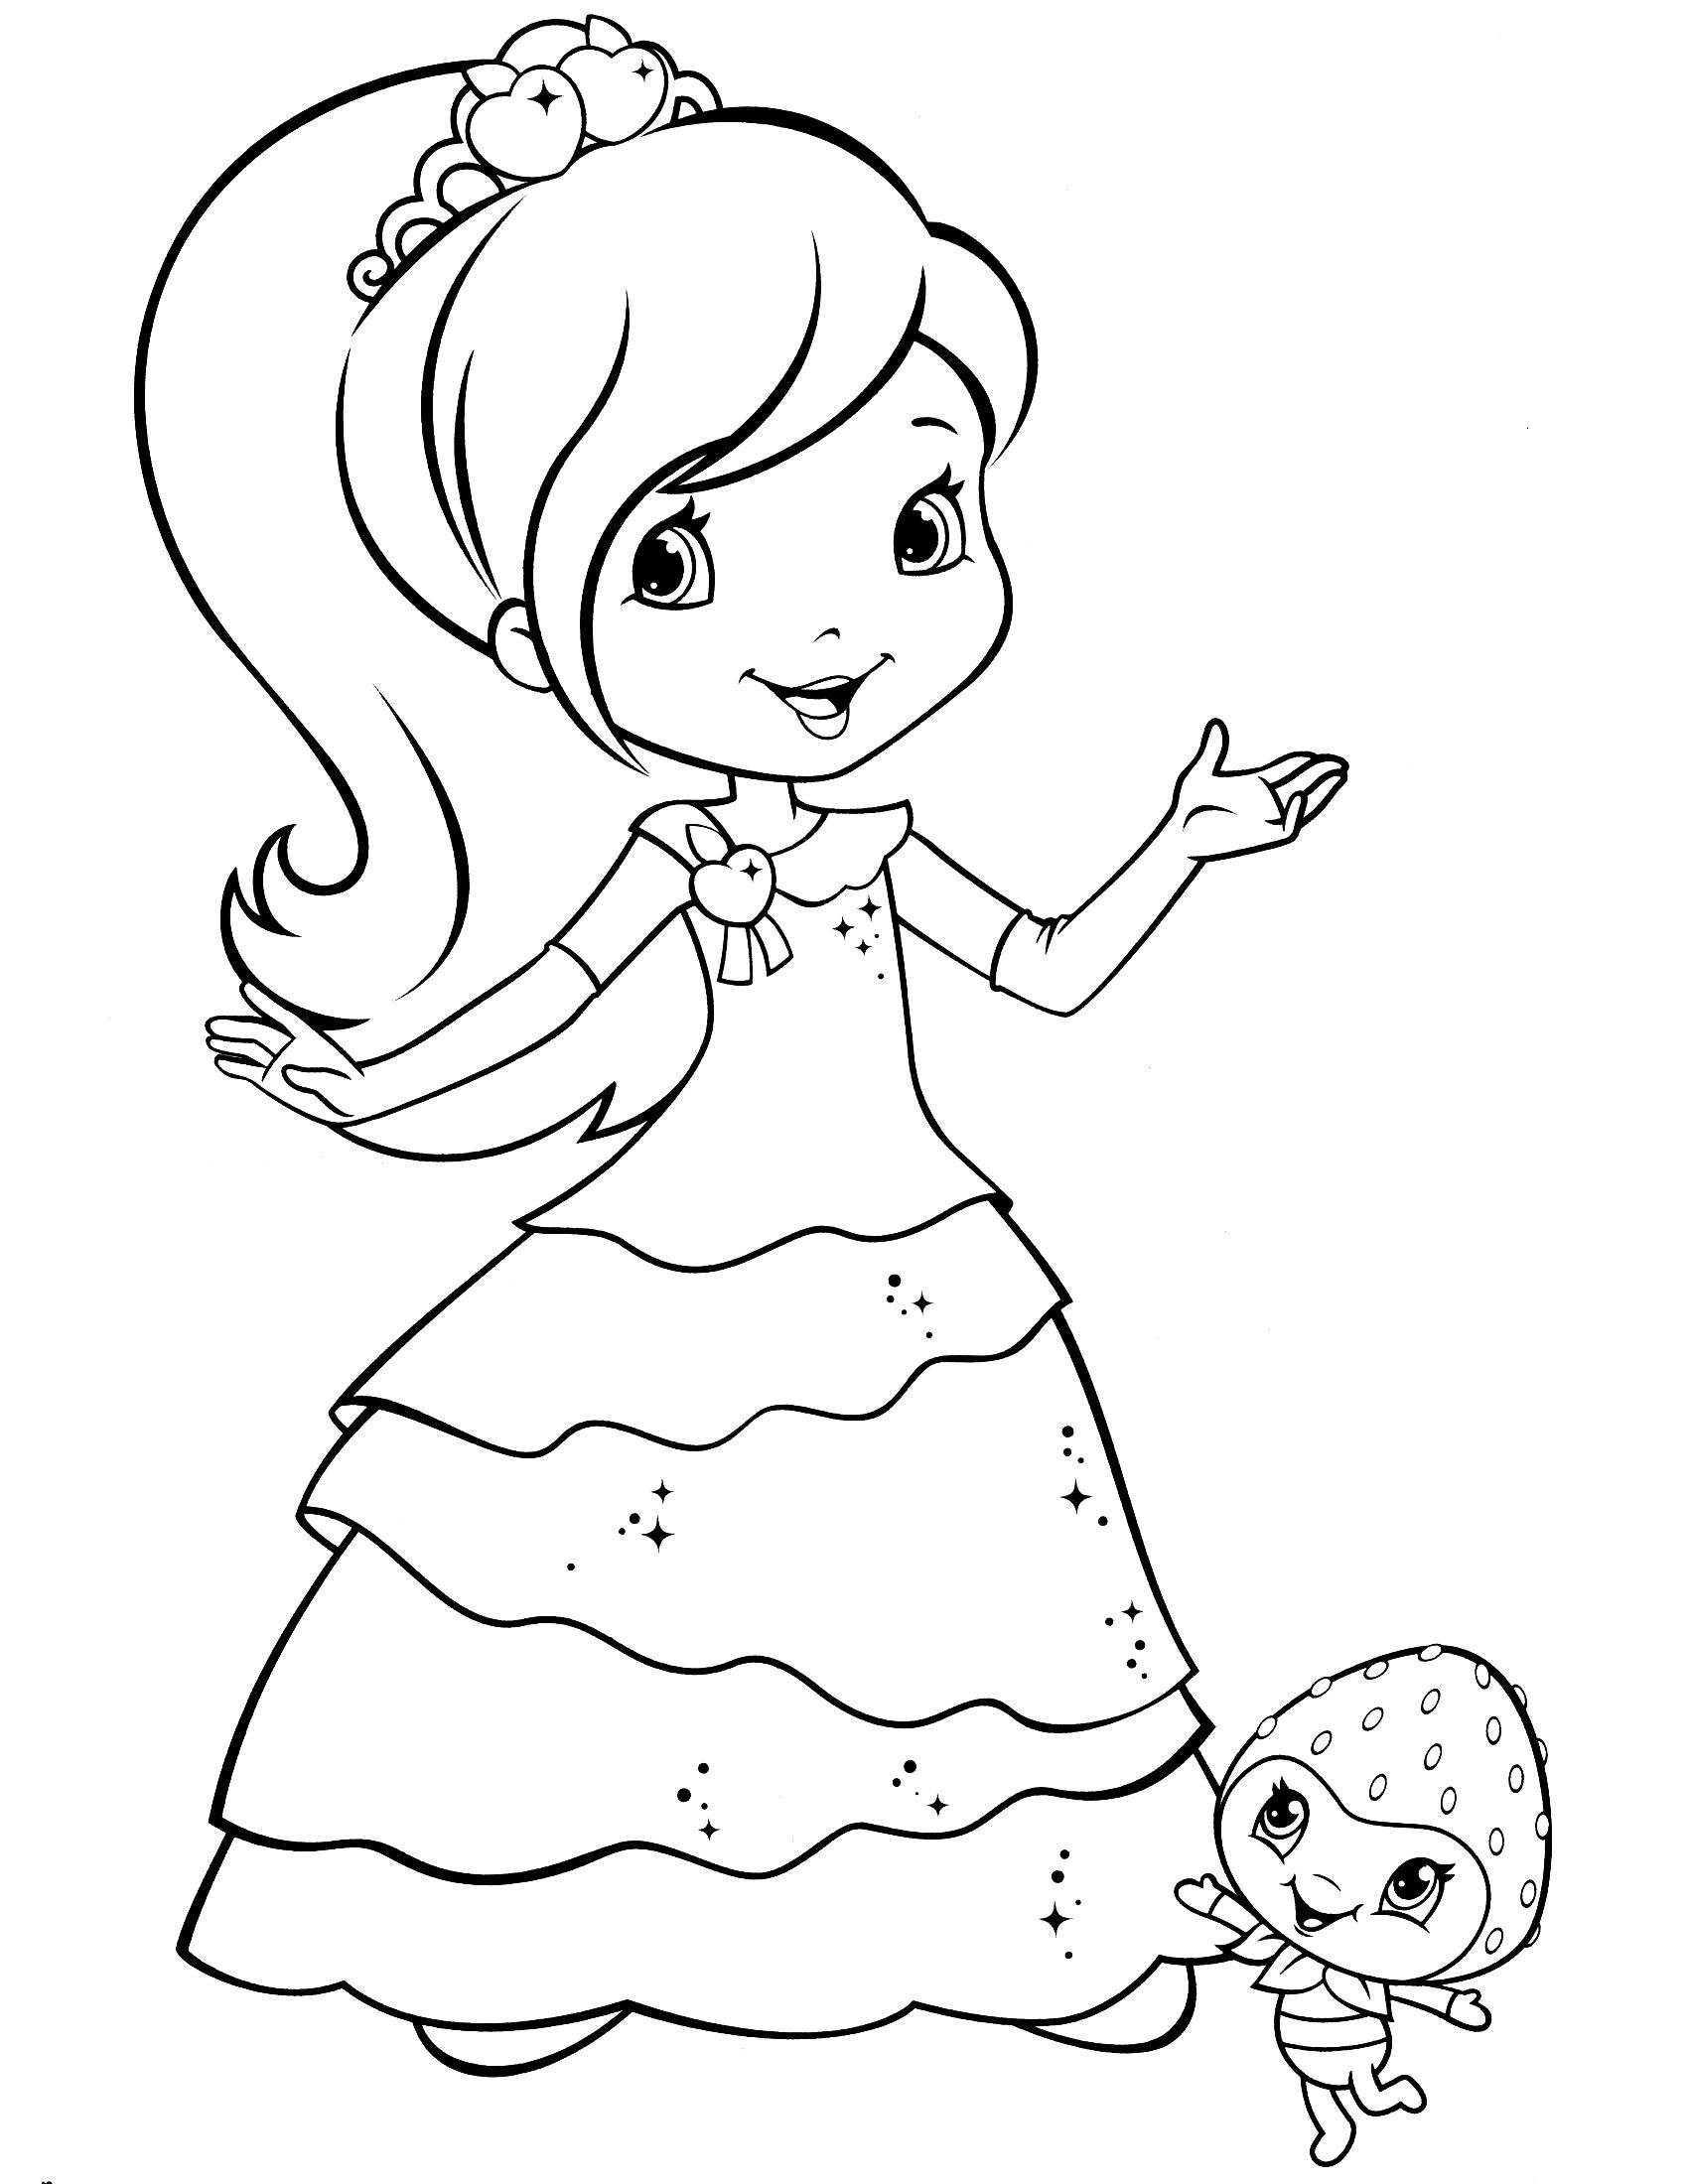 strawberry shortcake coloring pages for kids free printable strawberry shortcake coloring pages for kids coloring for pages kids shortcake strawberry